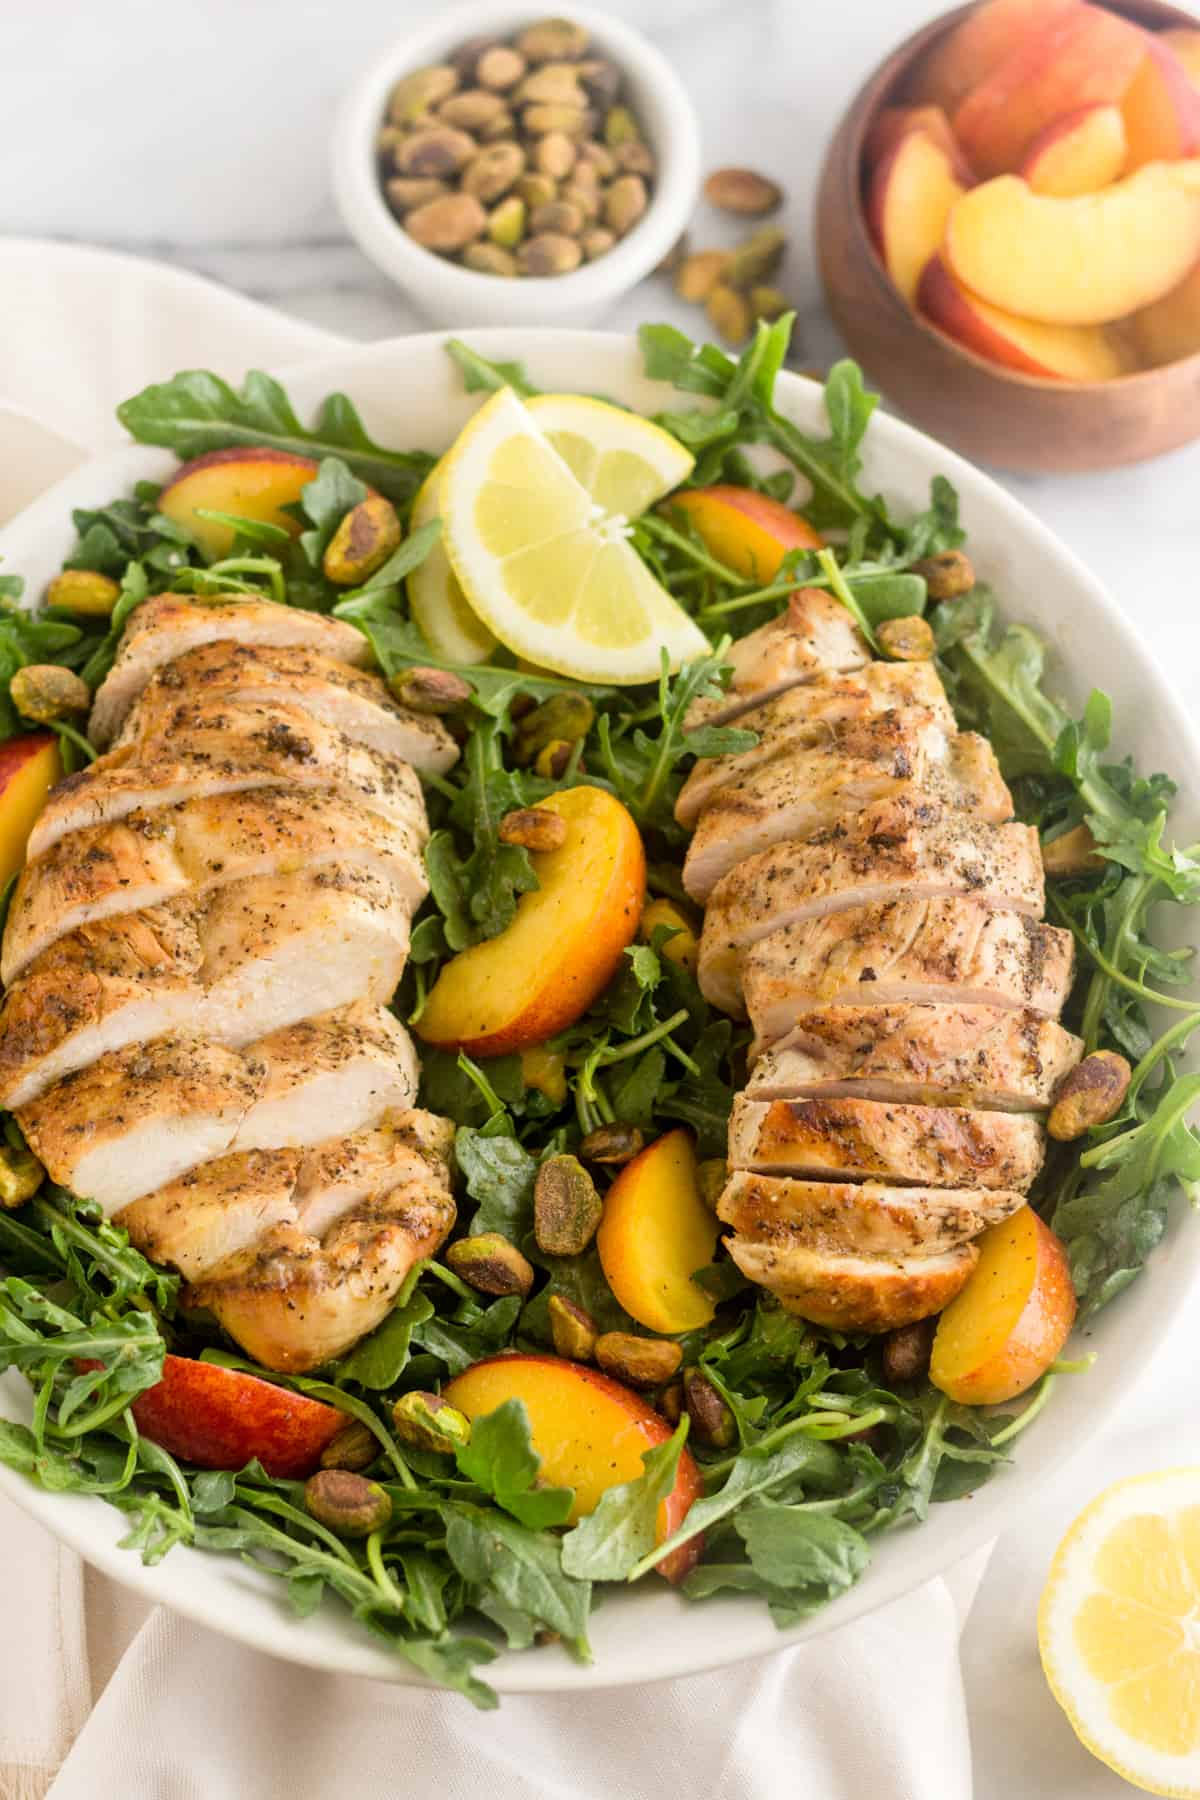 Large Peach and Pistachio Salad with Grilled Chicken garnished with lemon wedges